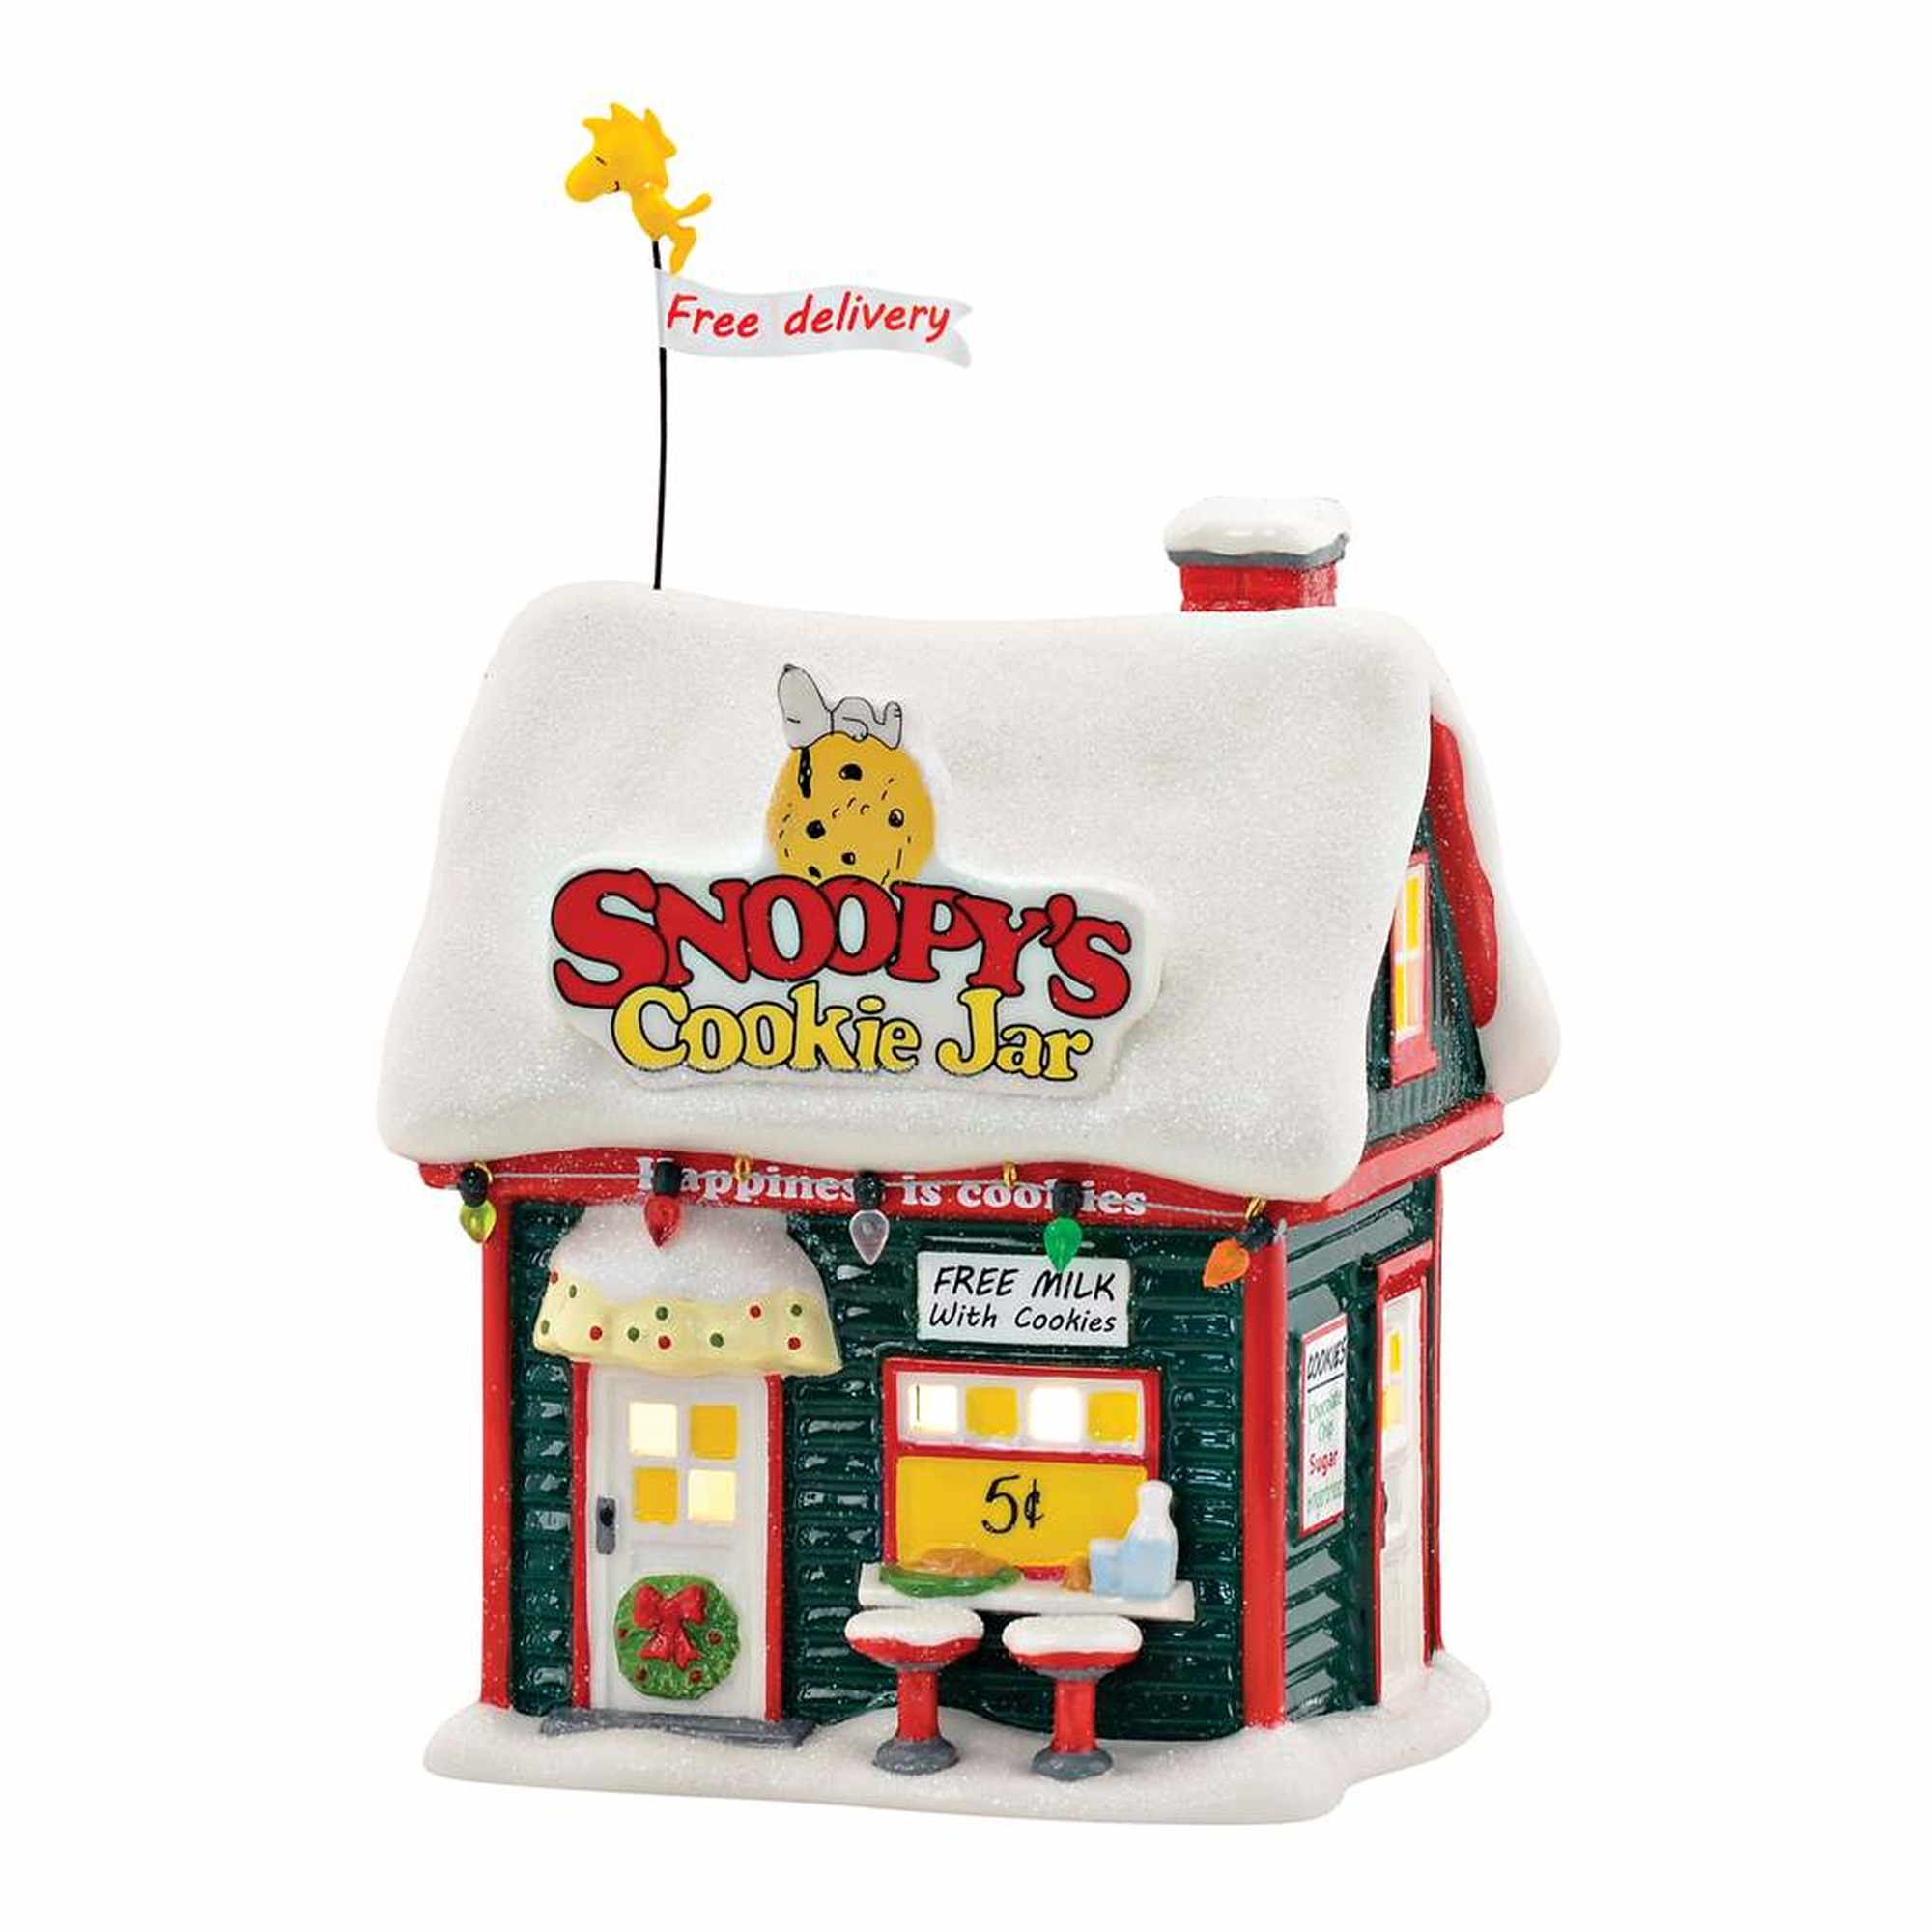 Snoopys Cookie Jar